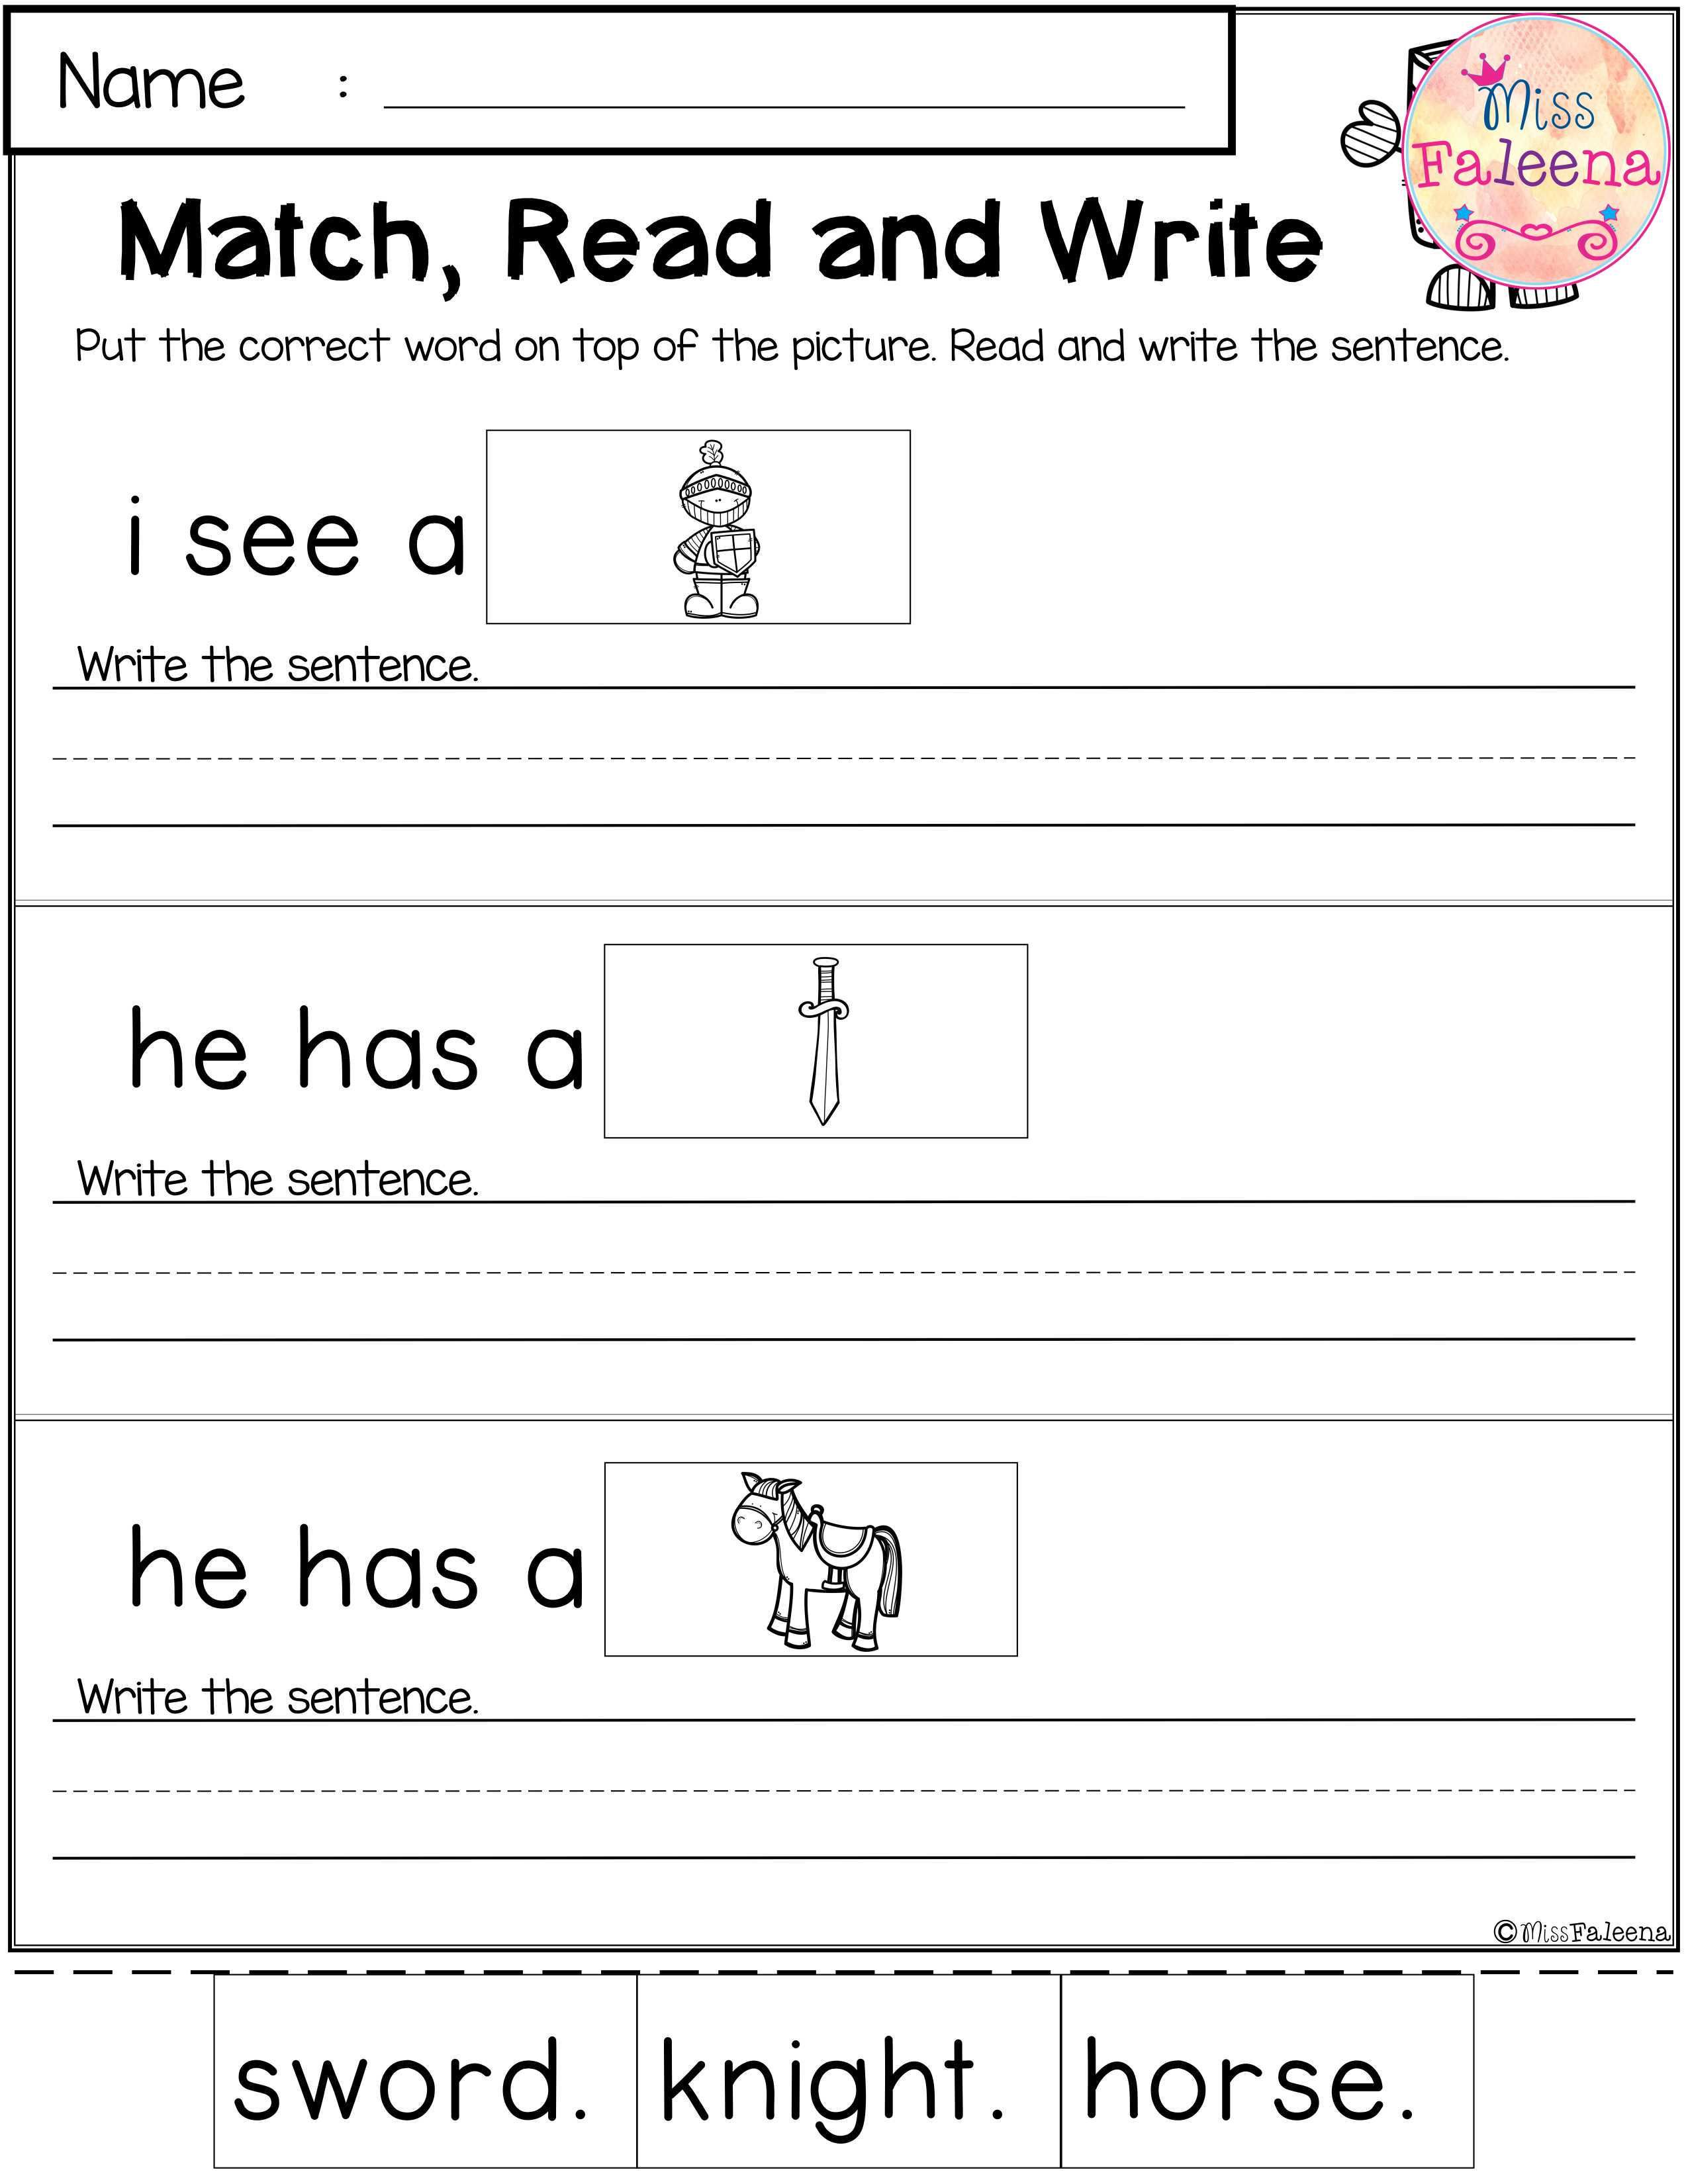 October Reading And Writing Practice This Product Has 20 Pages Of Reading And Writing Practice This P Writing Practice October Reading First Grade Worksheets [ 3300 x 2550 Pixel ]